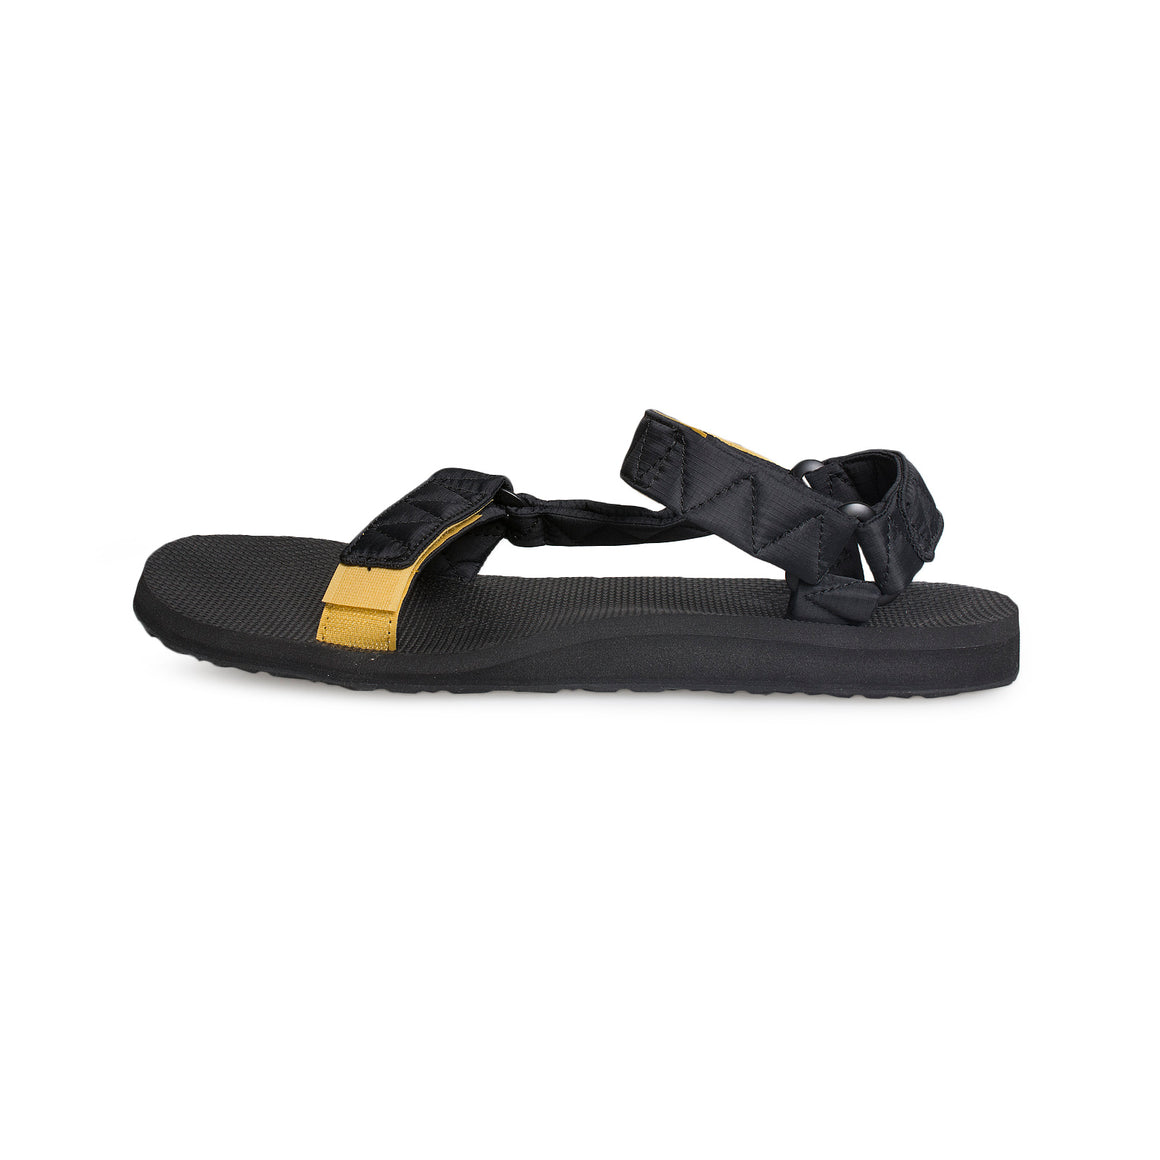 TEVA Original Universal Puff Black Sandals - Men's